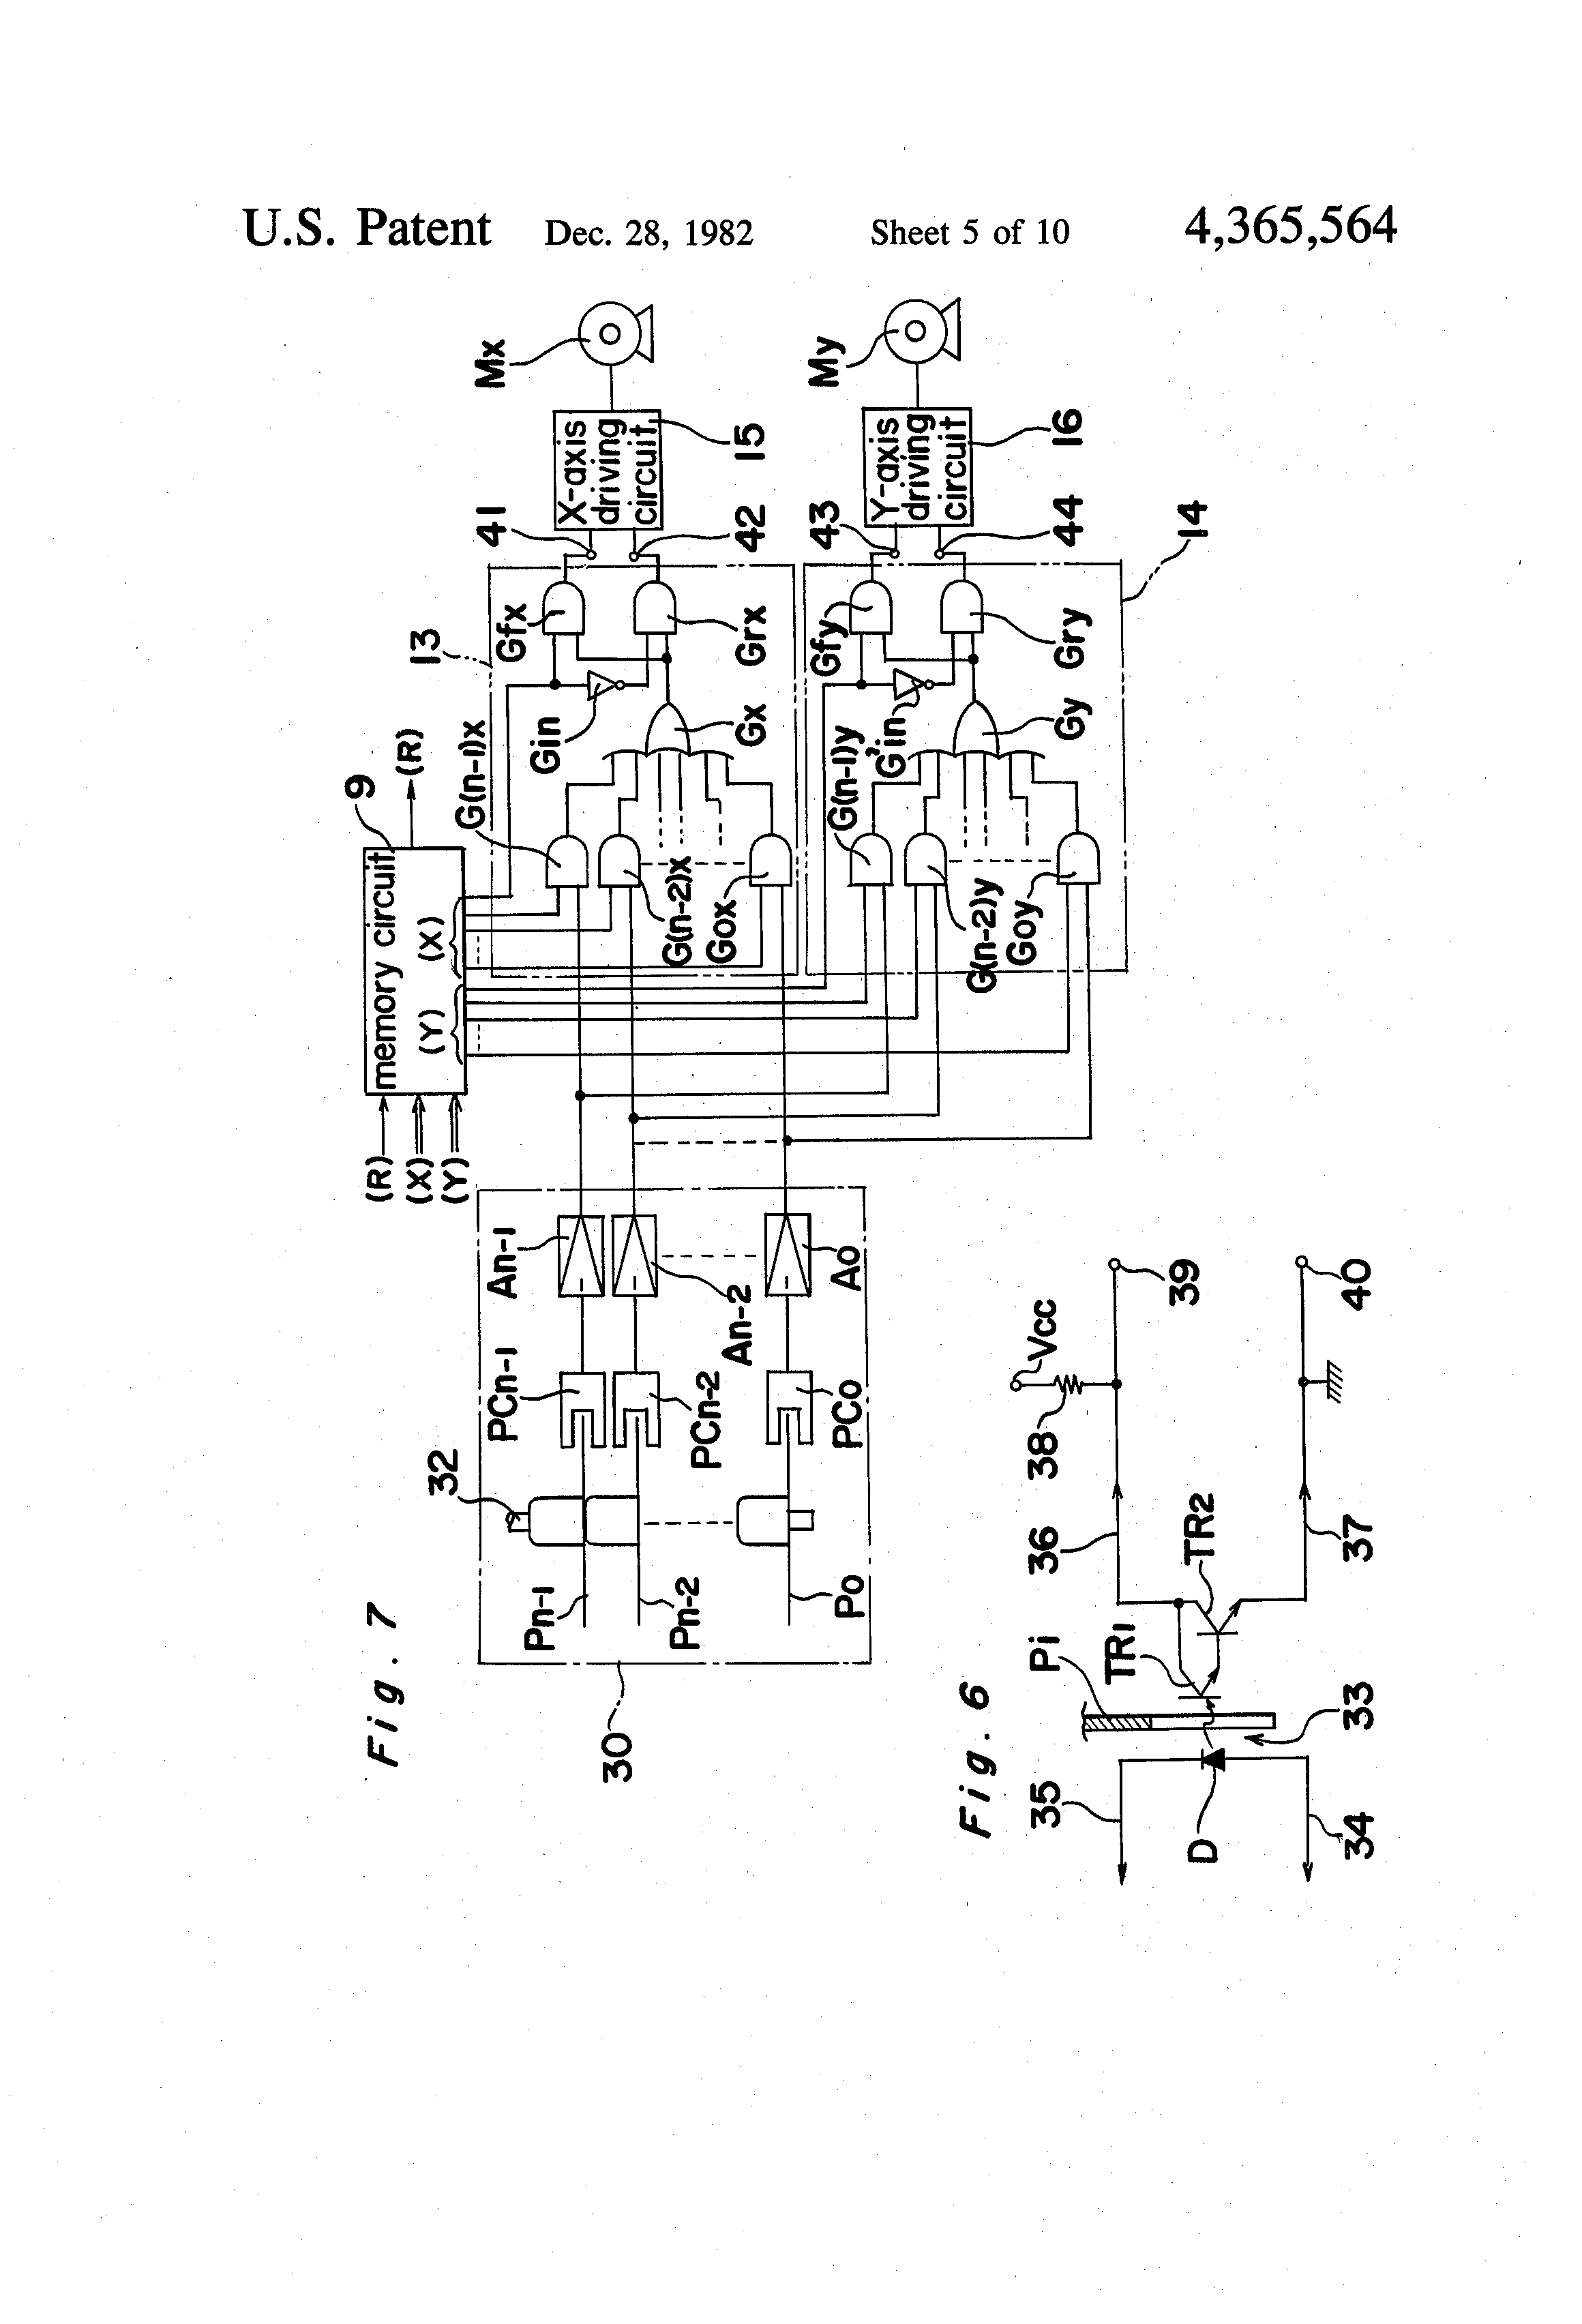 Patent Us4365564 Driving Apparatus For Retaining Frame Of Object Yx Wiring Diagram Drawing